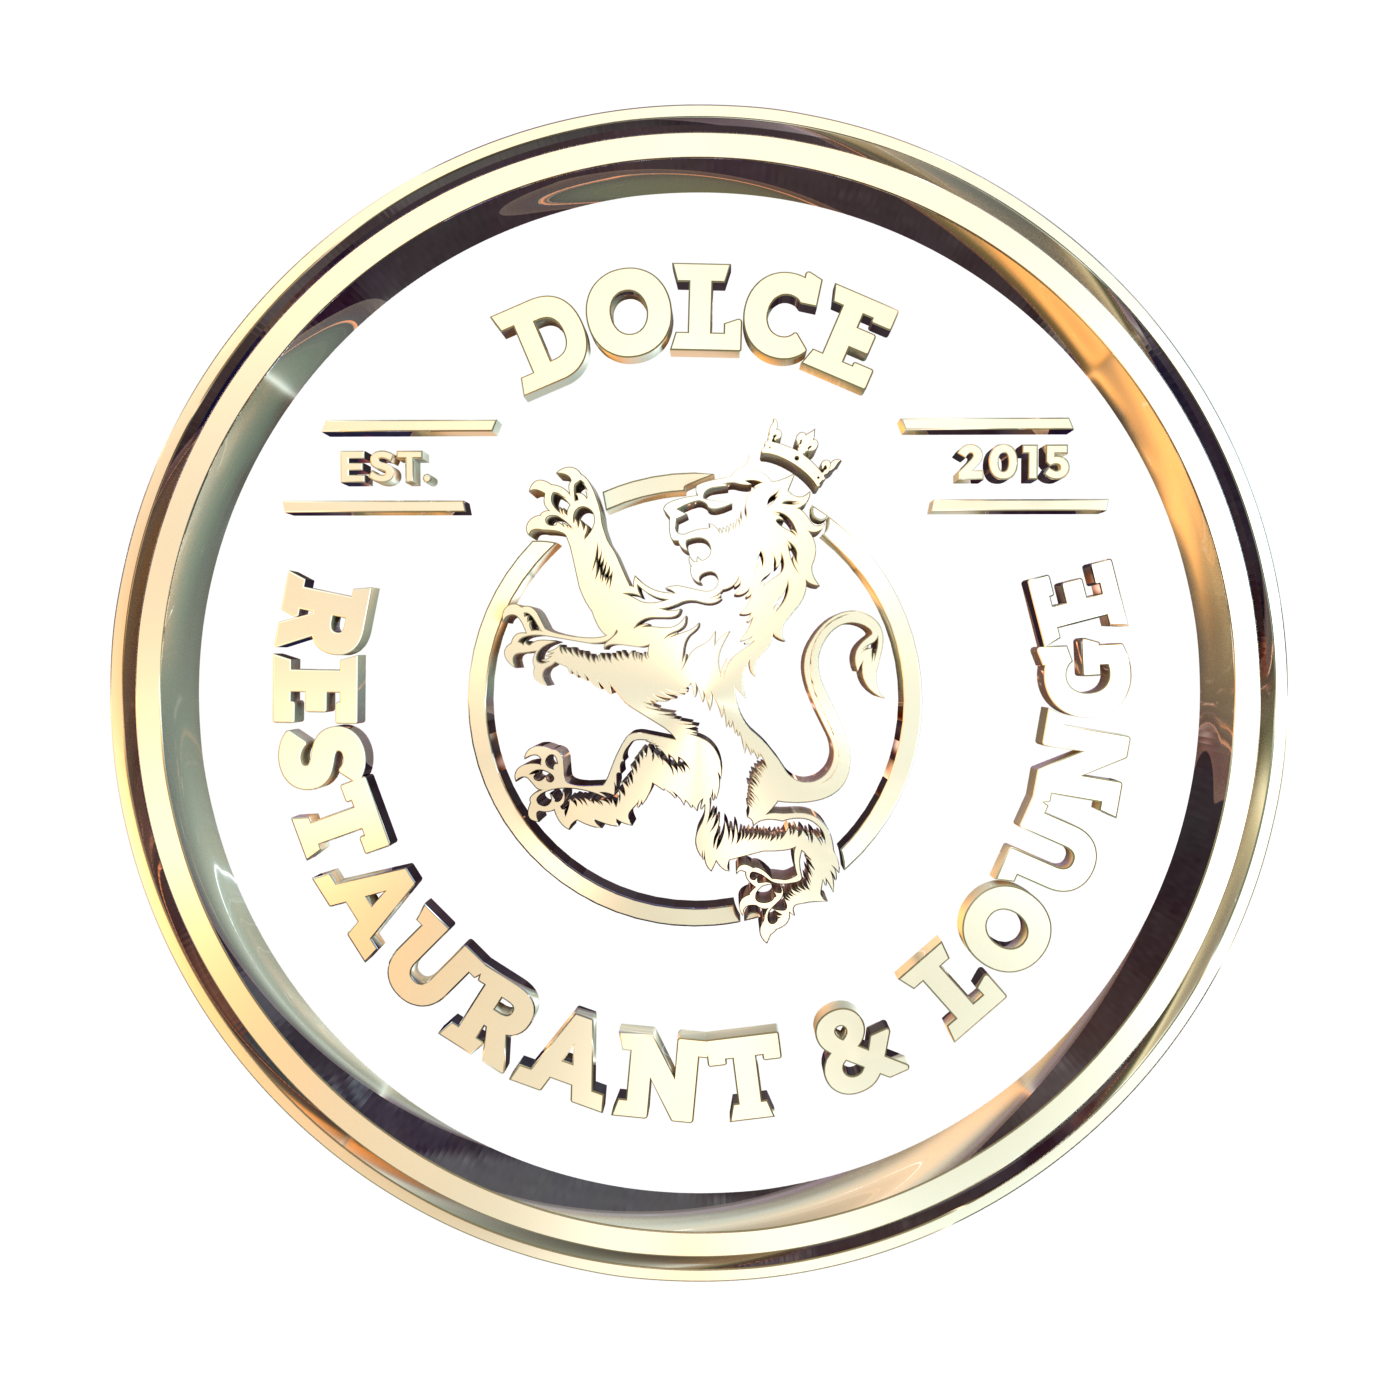 Dolce Restaurant & Lounge